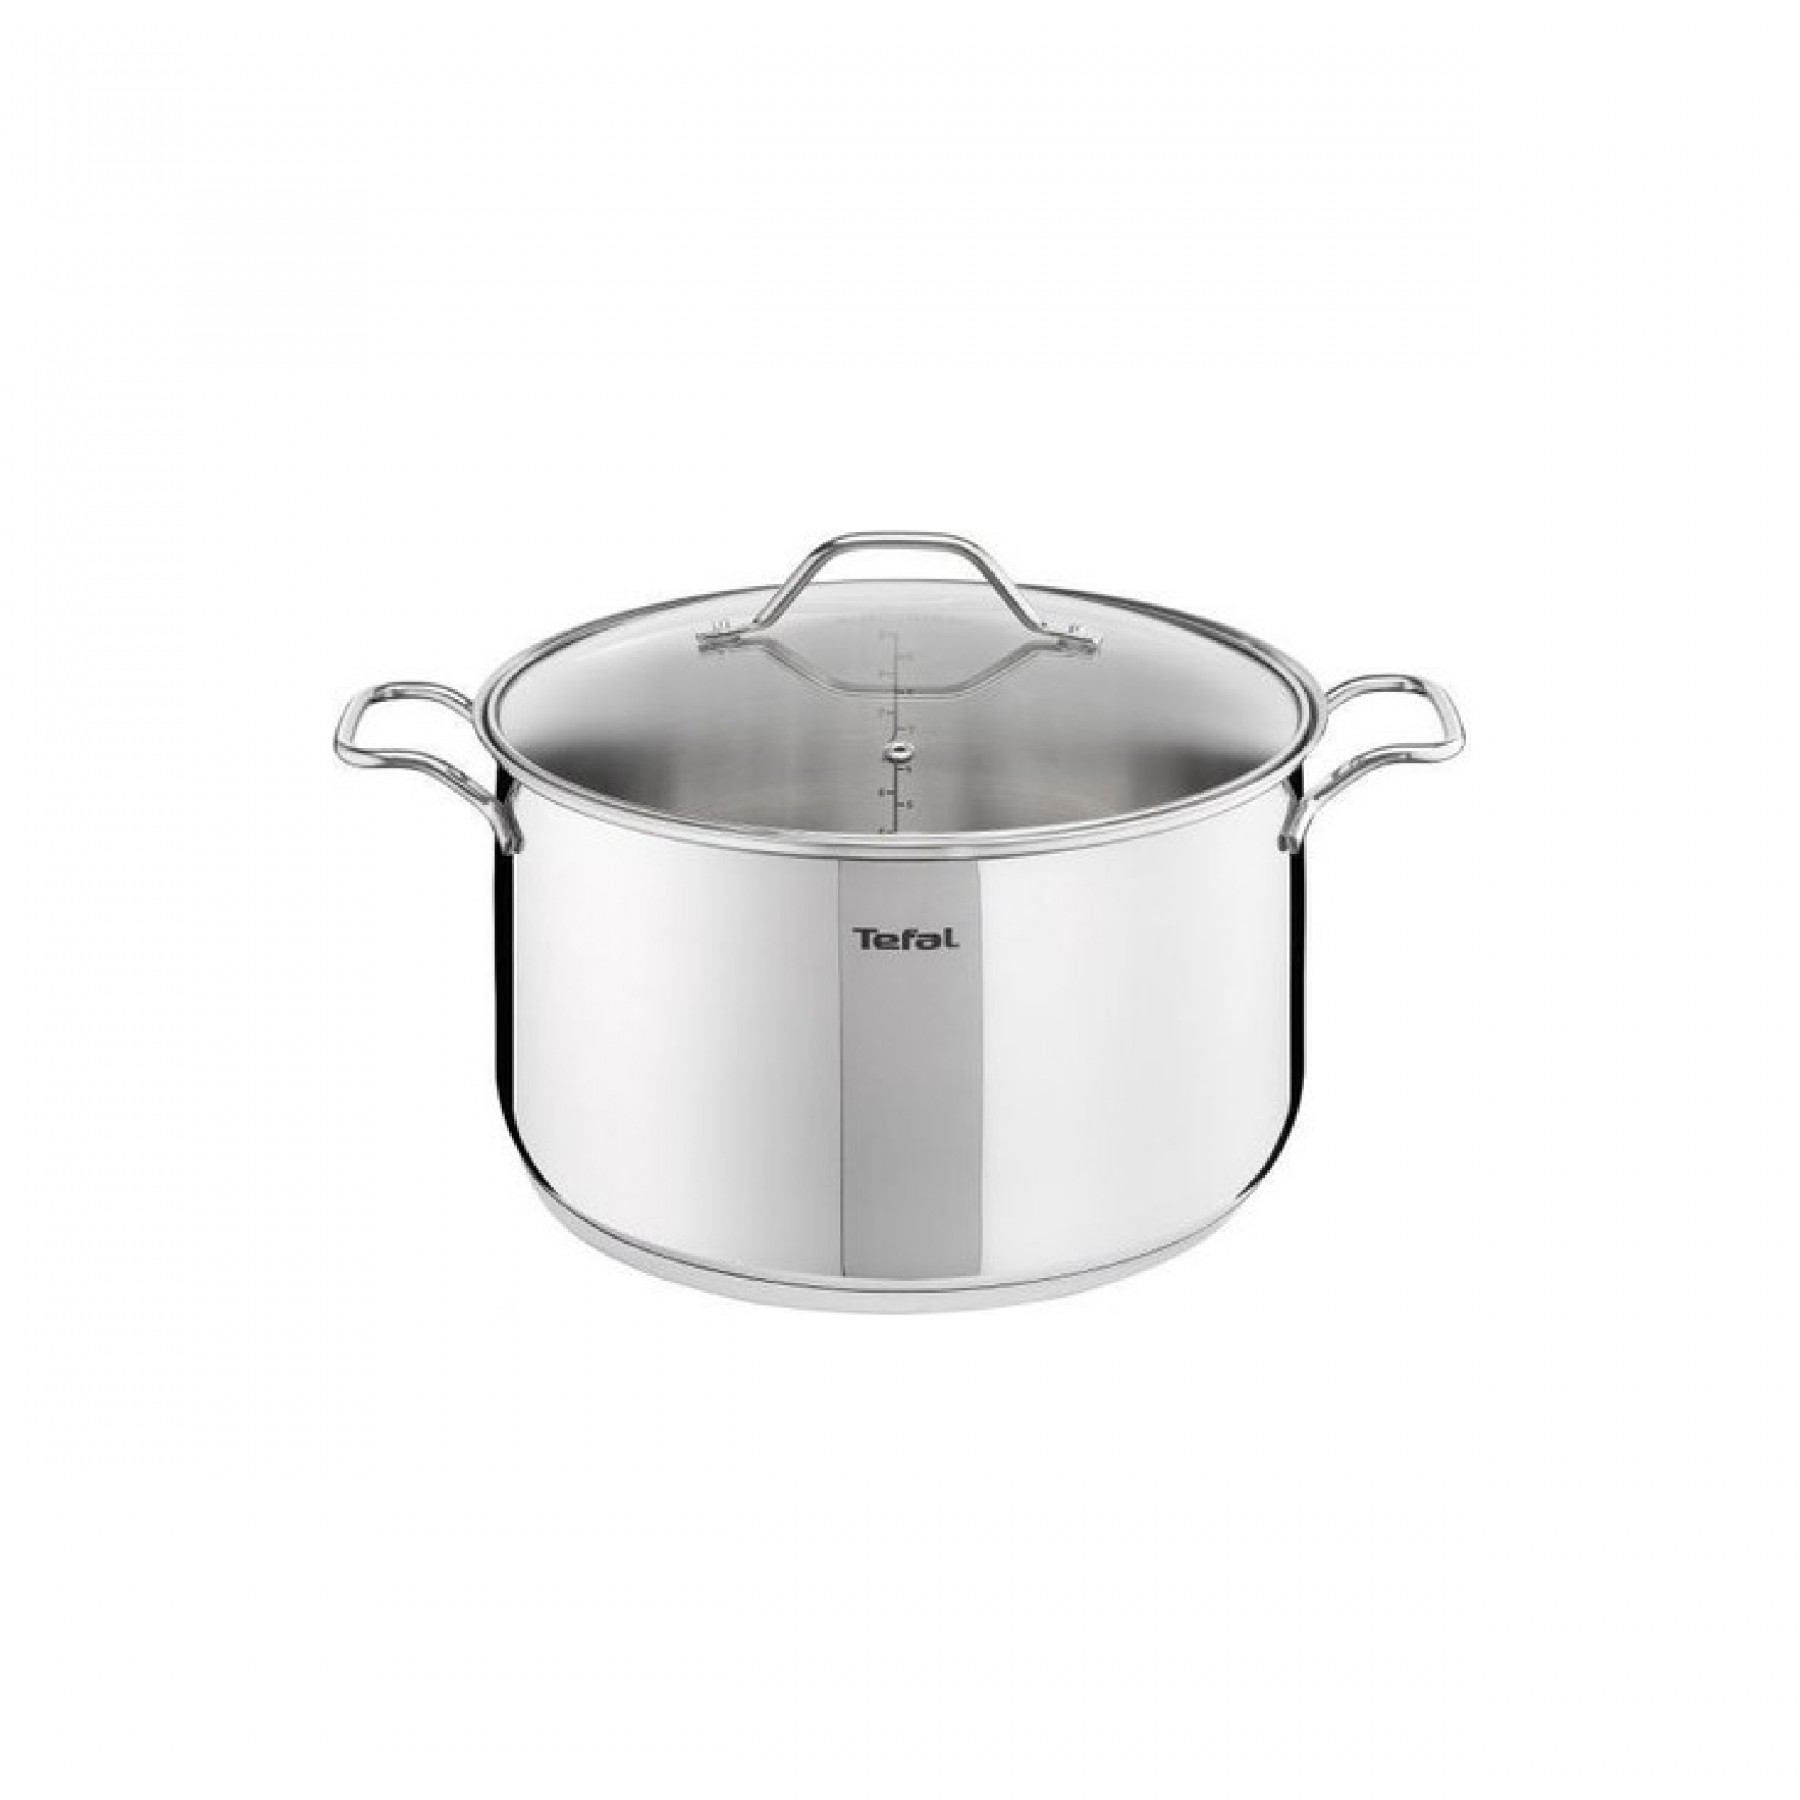 TEFAL Intuition XL Extra Large Pot Stainless Steel 36 cm with lid B9087514